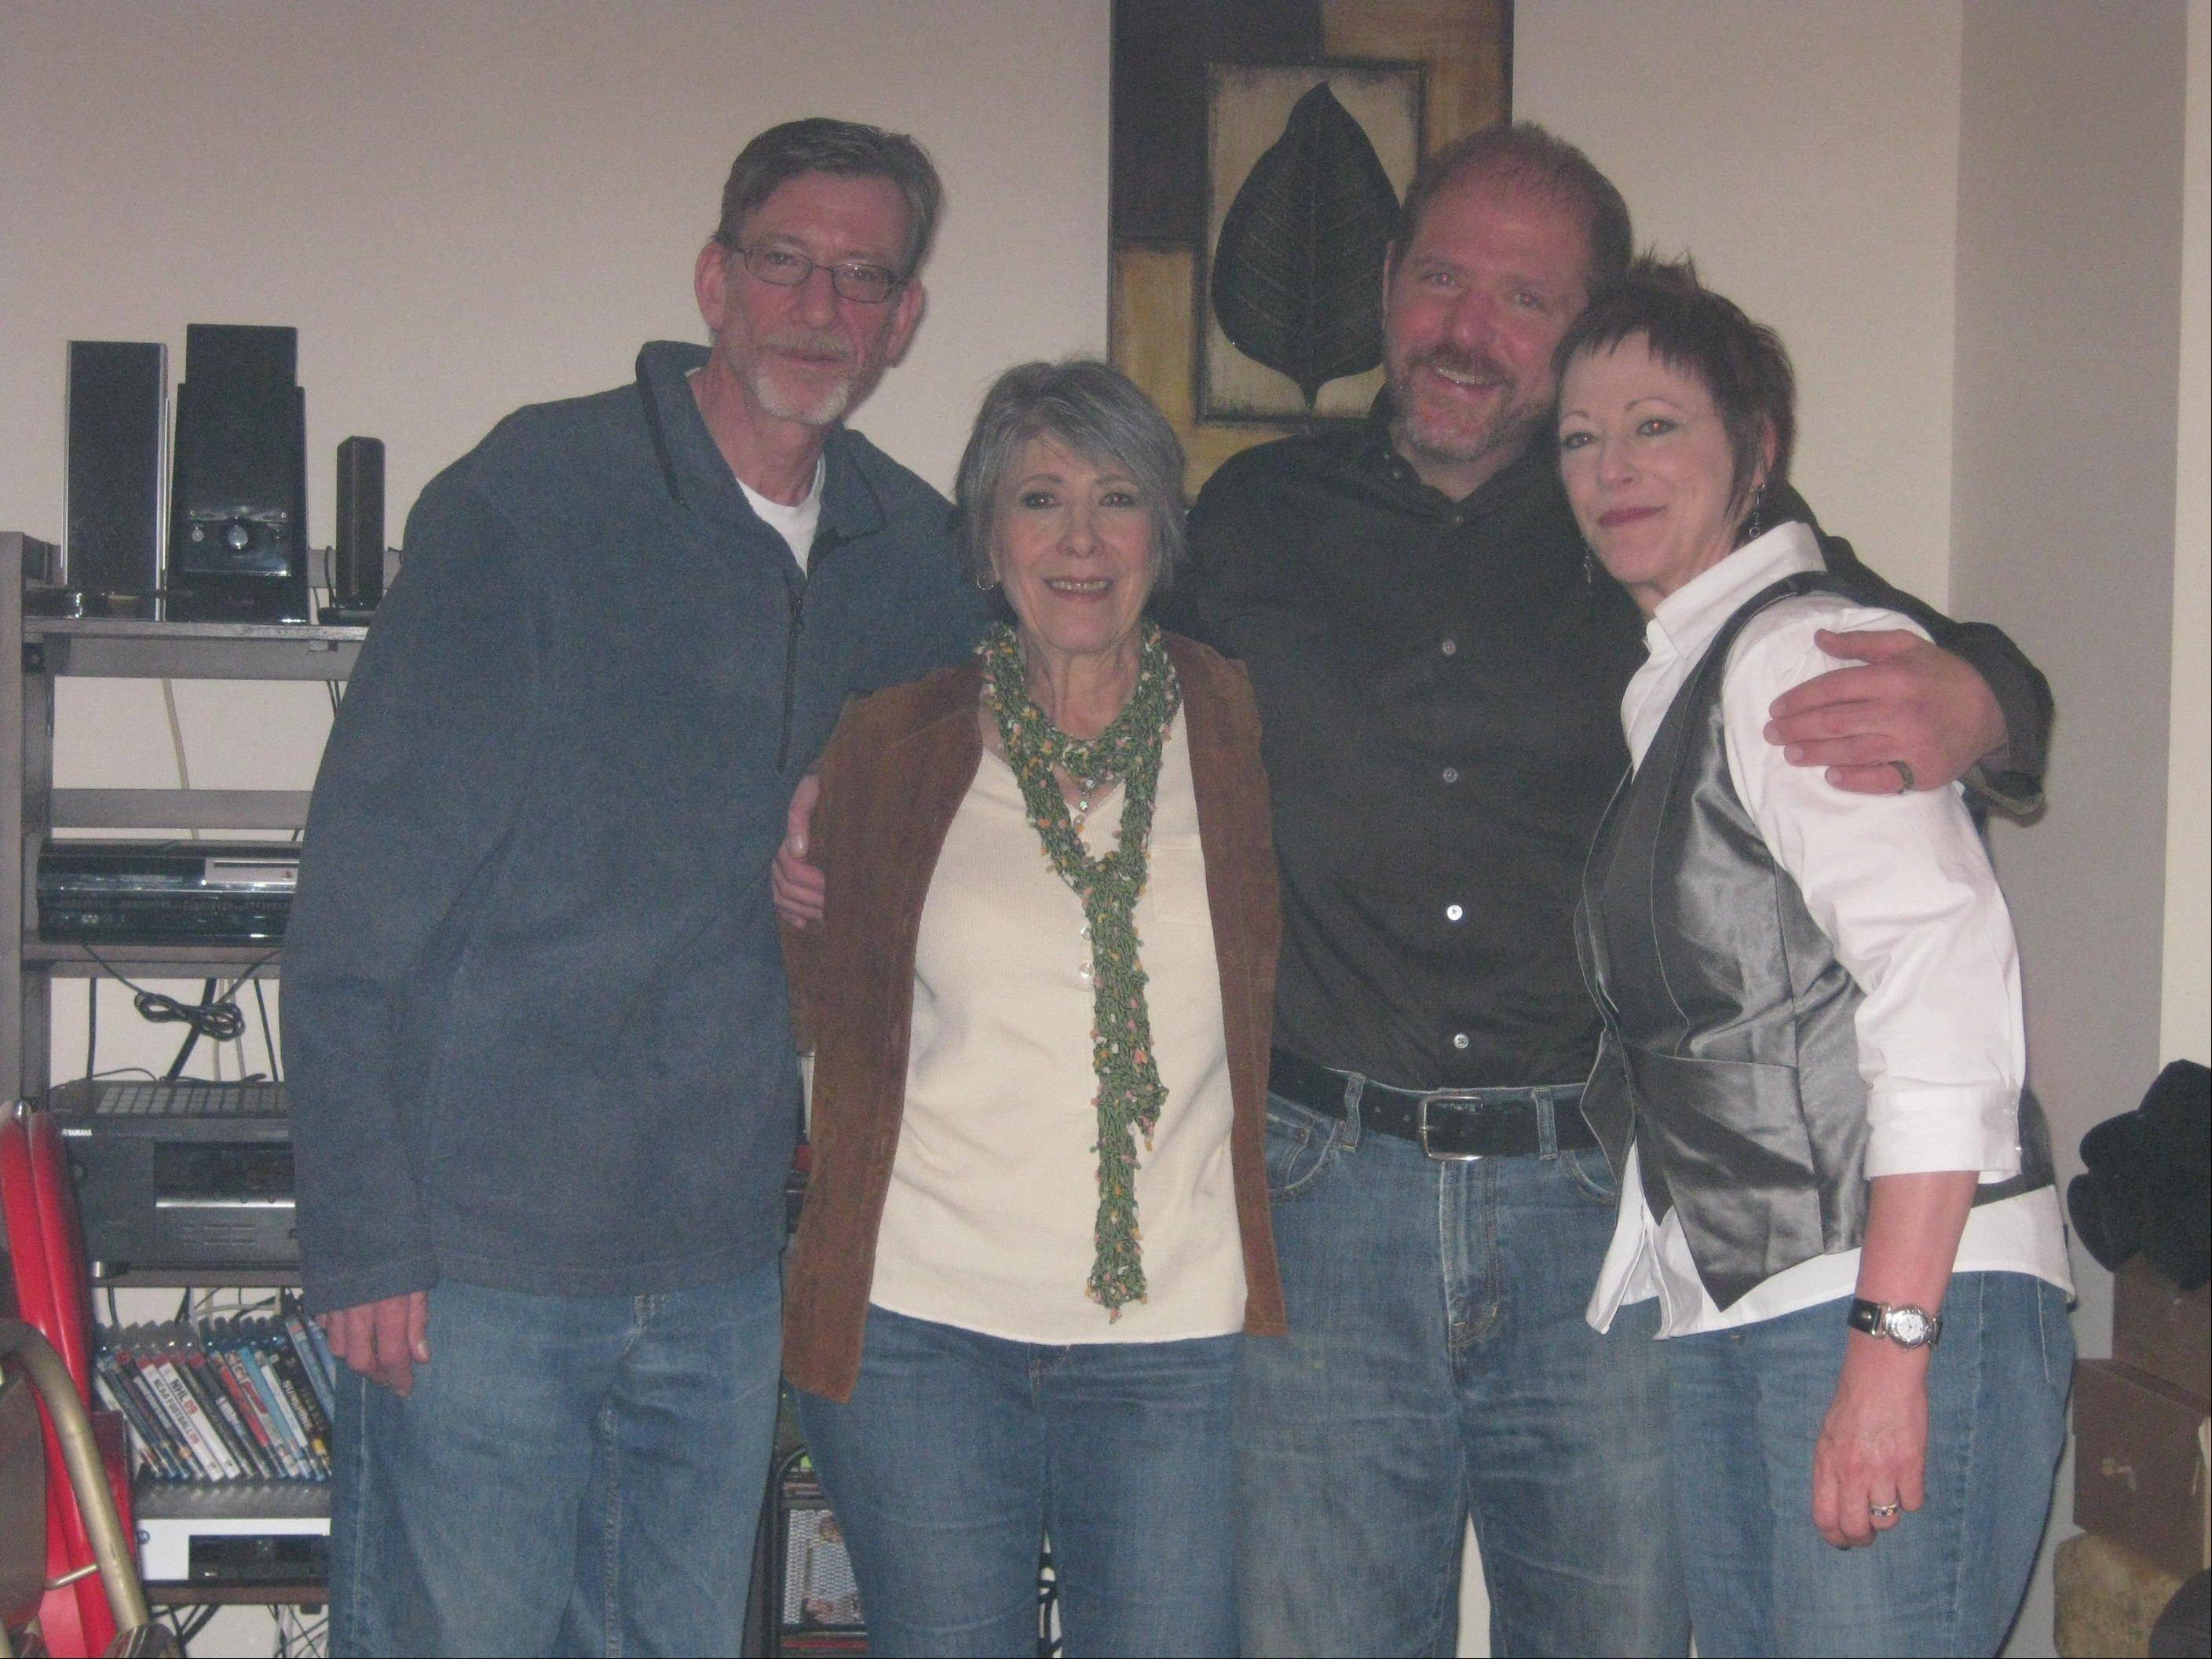 Mark Segal with his mother Naomi Moderick and siblings Allen and Carin during Thanksgiving 2009. Moderick has organized this weekend's Breathe Deep Lake Arlington walk to raise money for the fight against lung cancer, which claimed Segal's life in 2011.